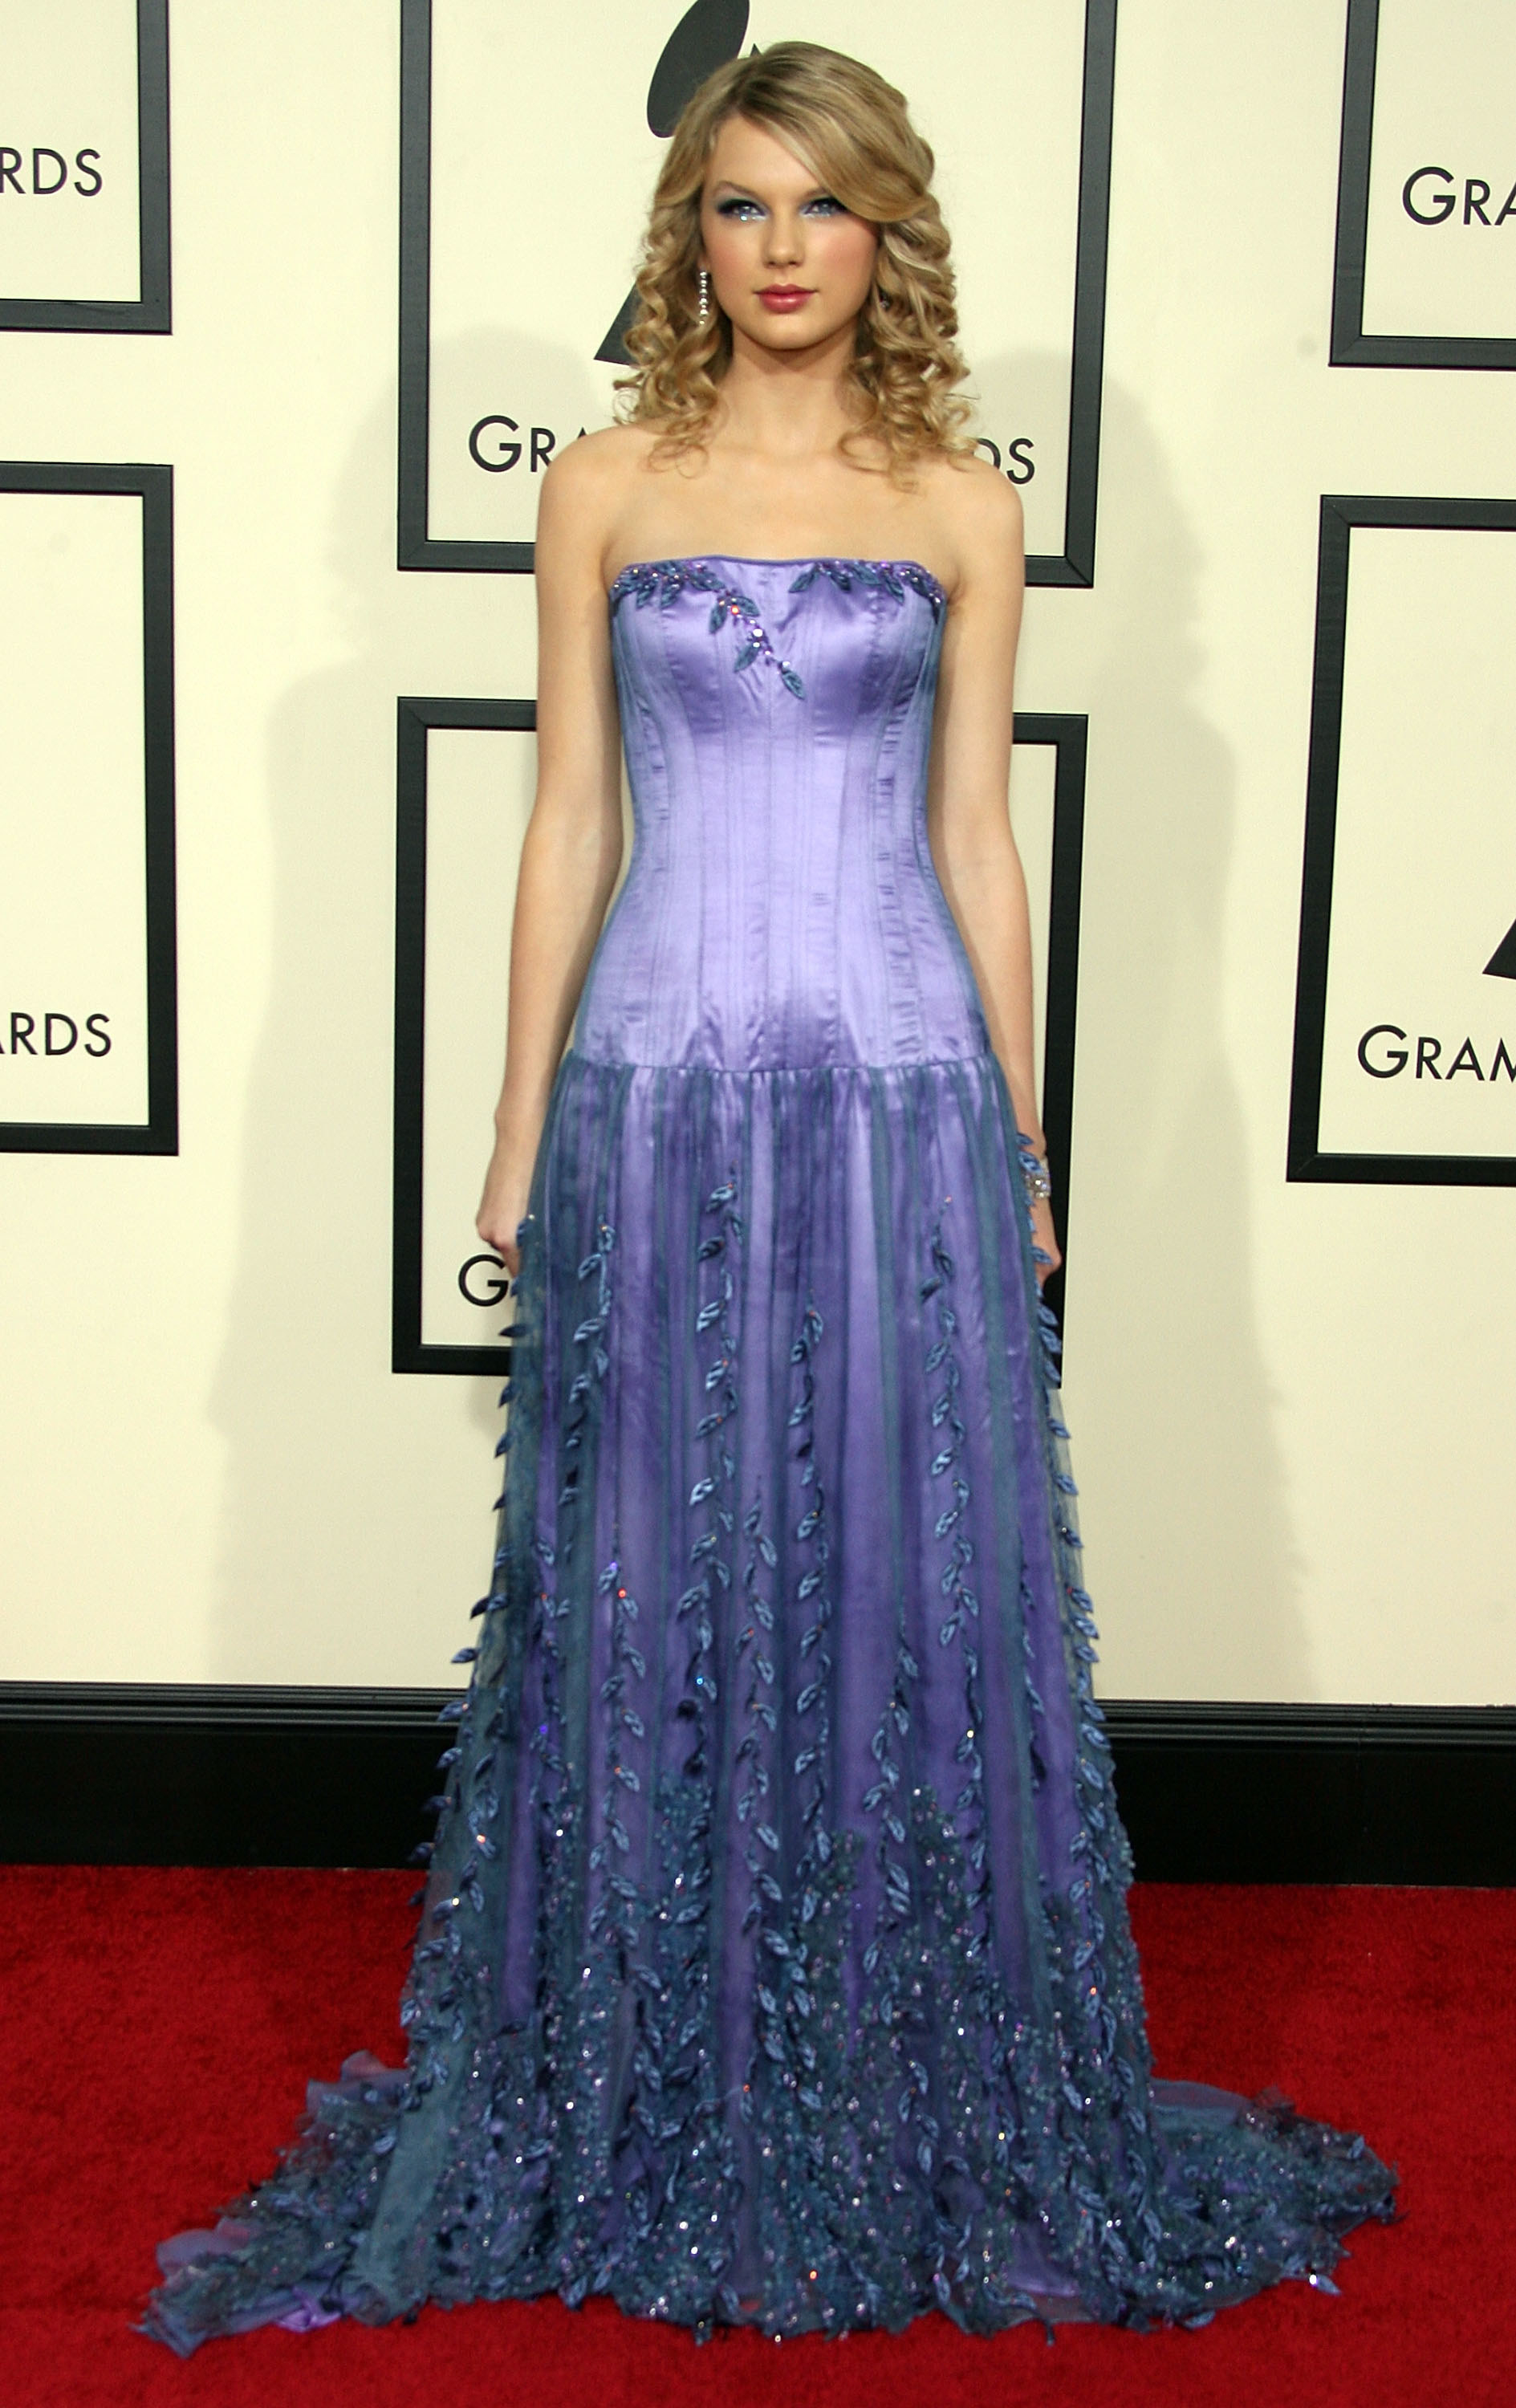 Taylor Swift at the 2008 Grammy awards in a long purple sparkly dress